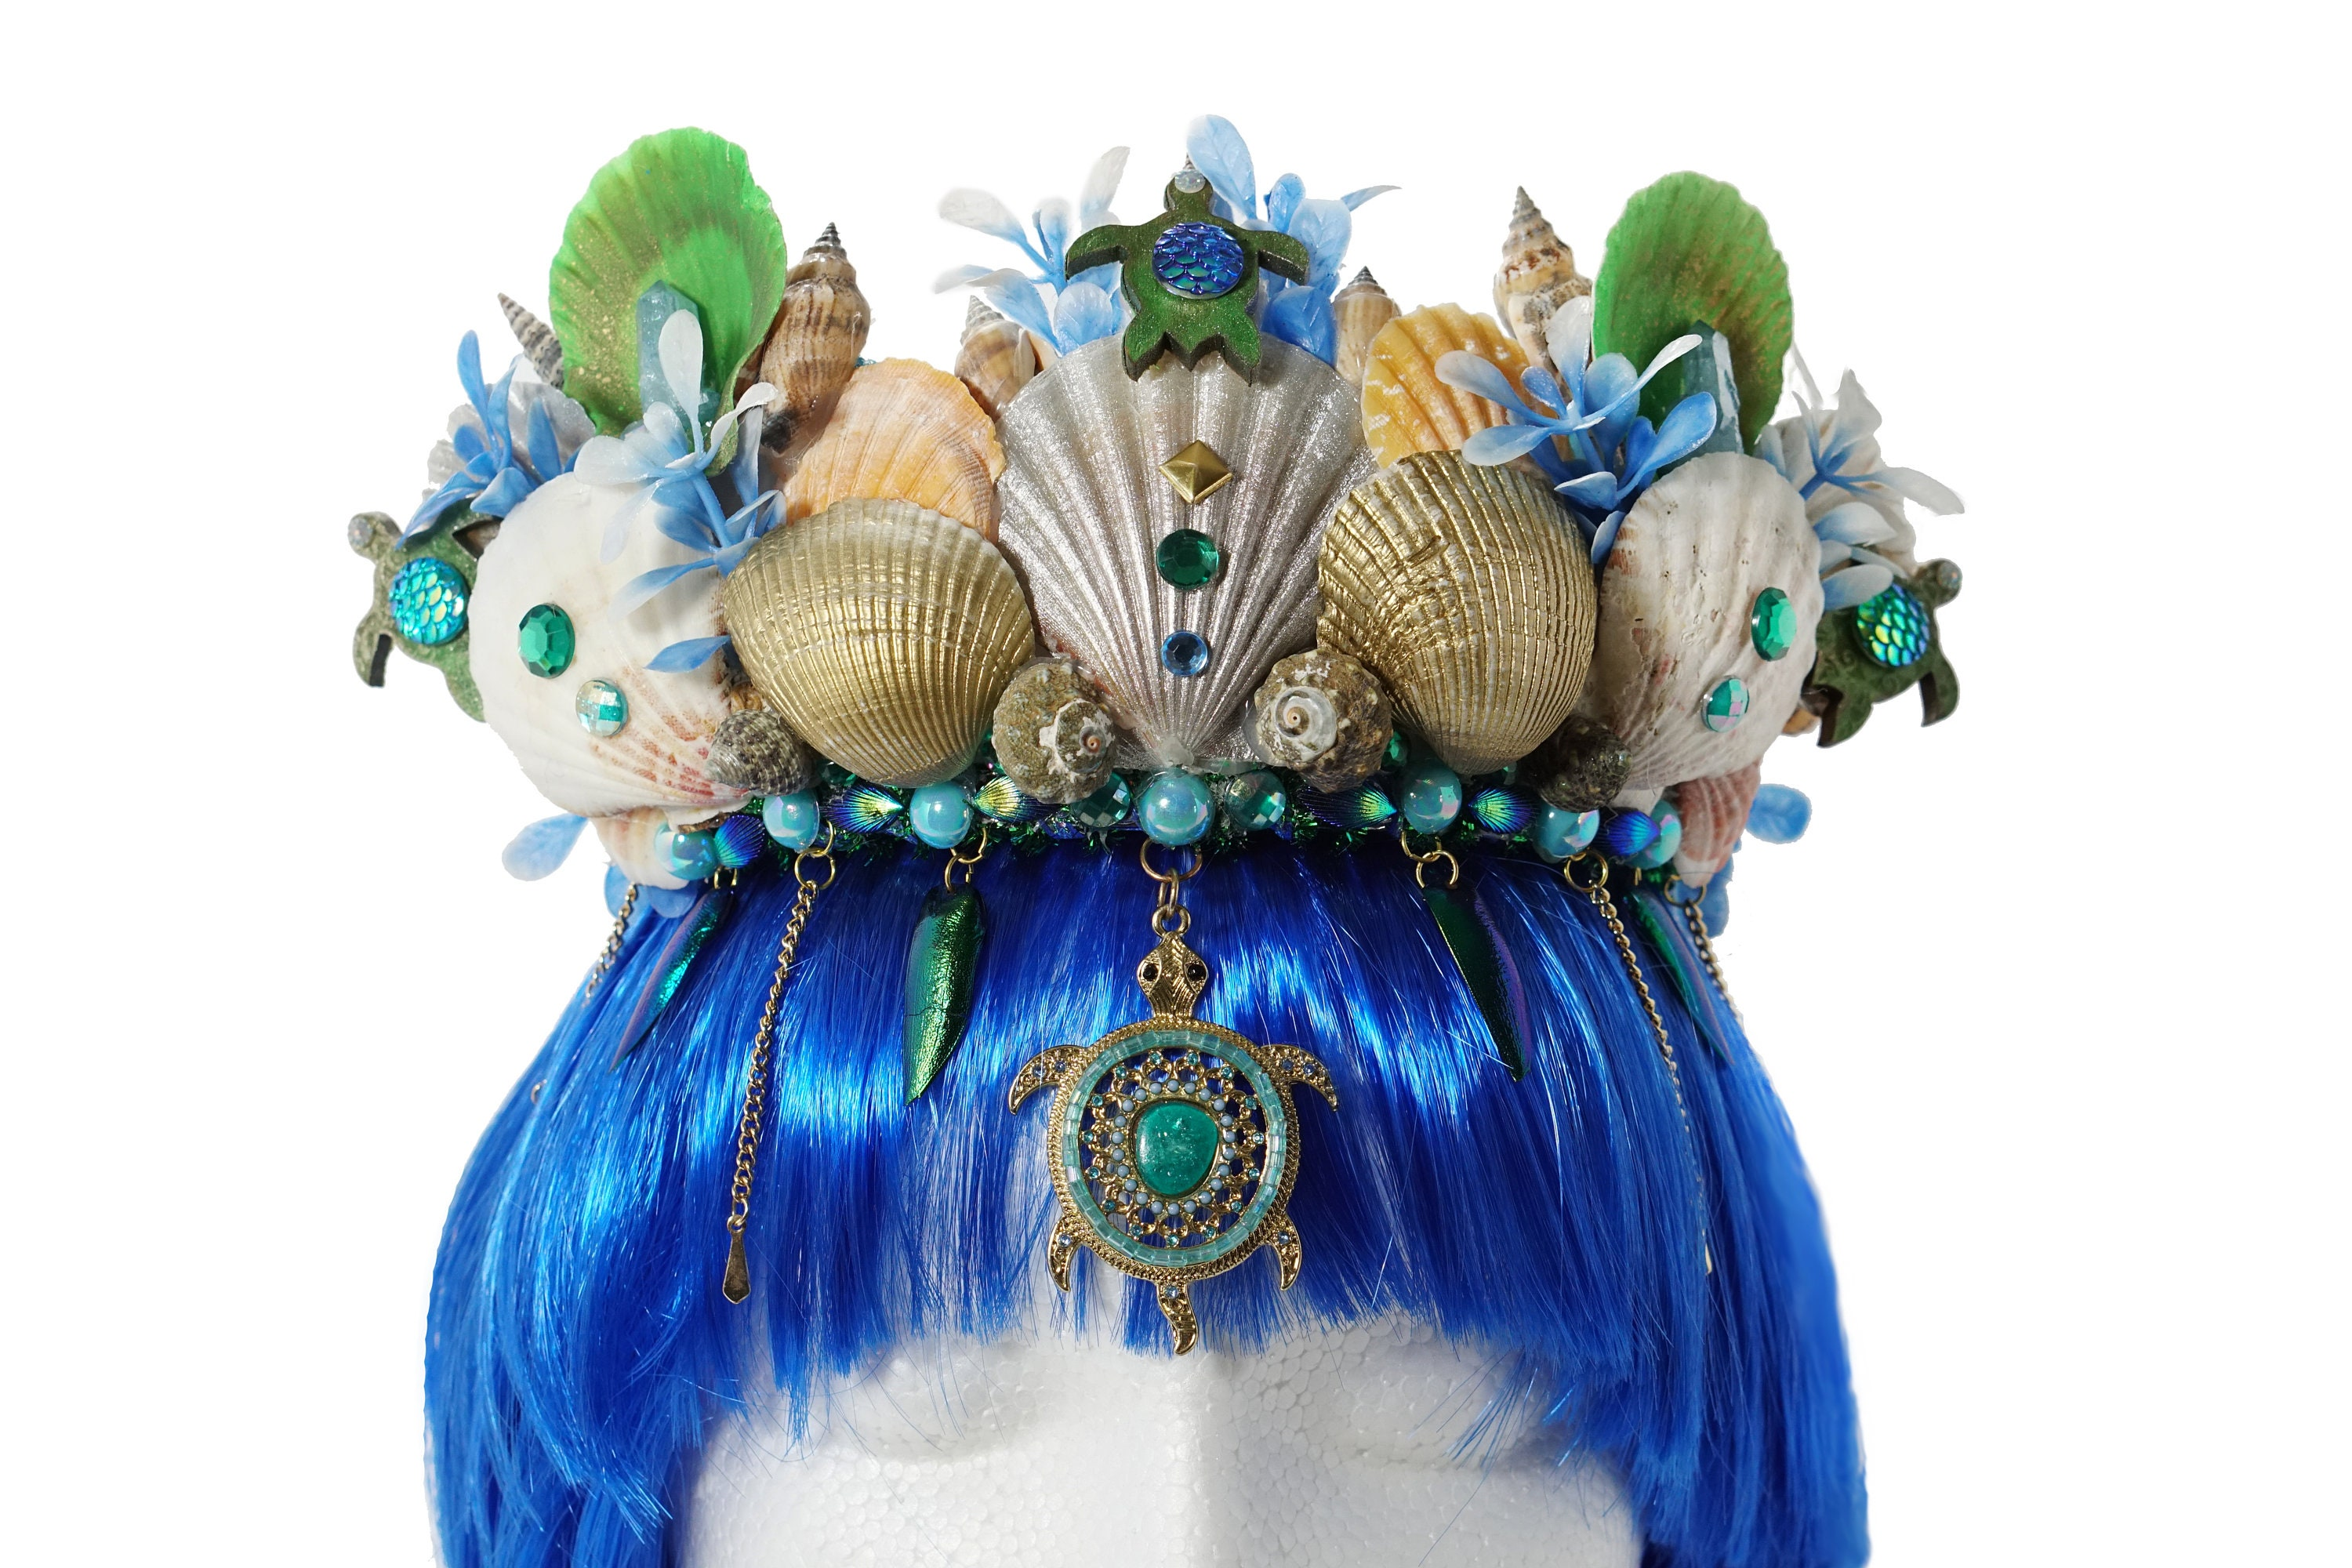 Sea-stars Shells Mermaid Headband Mermaid Costume Accessories